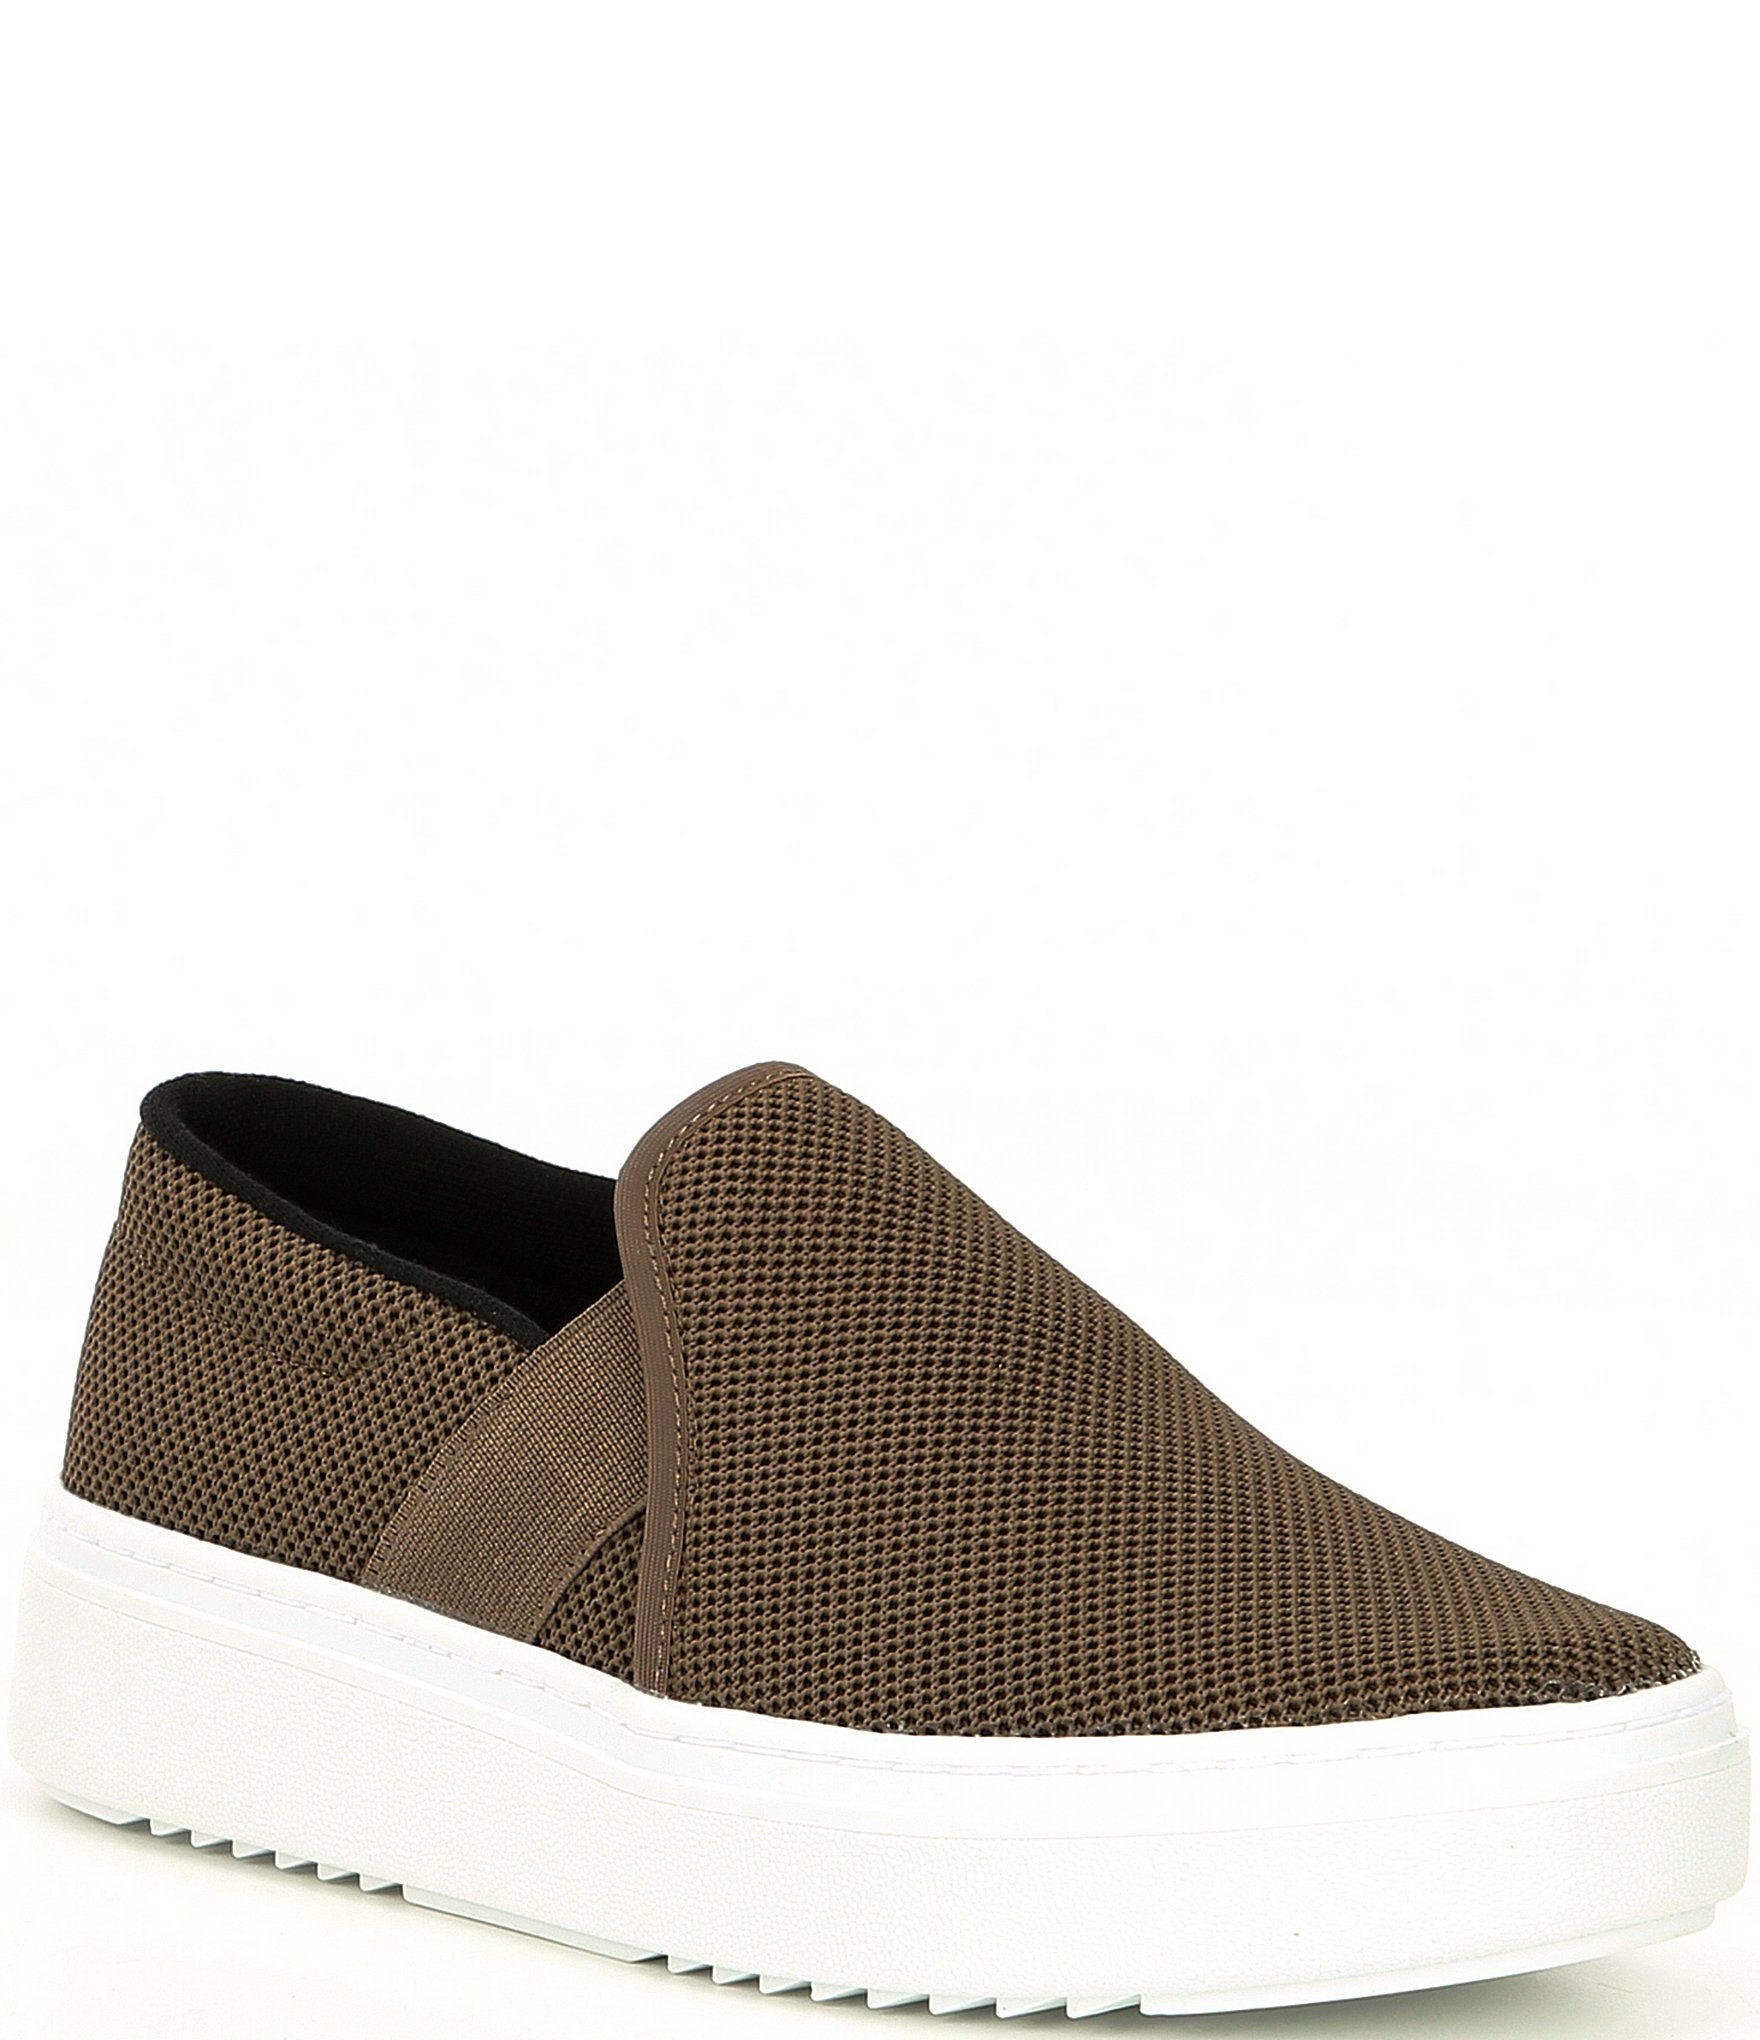 From Eileen Fisher, the Pep Stretch Platform Slip On Sneakers feature:Stretch fabric upperSlip onLeather liningRubber outsoleapprox. 1.57